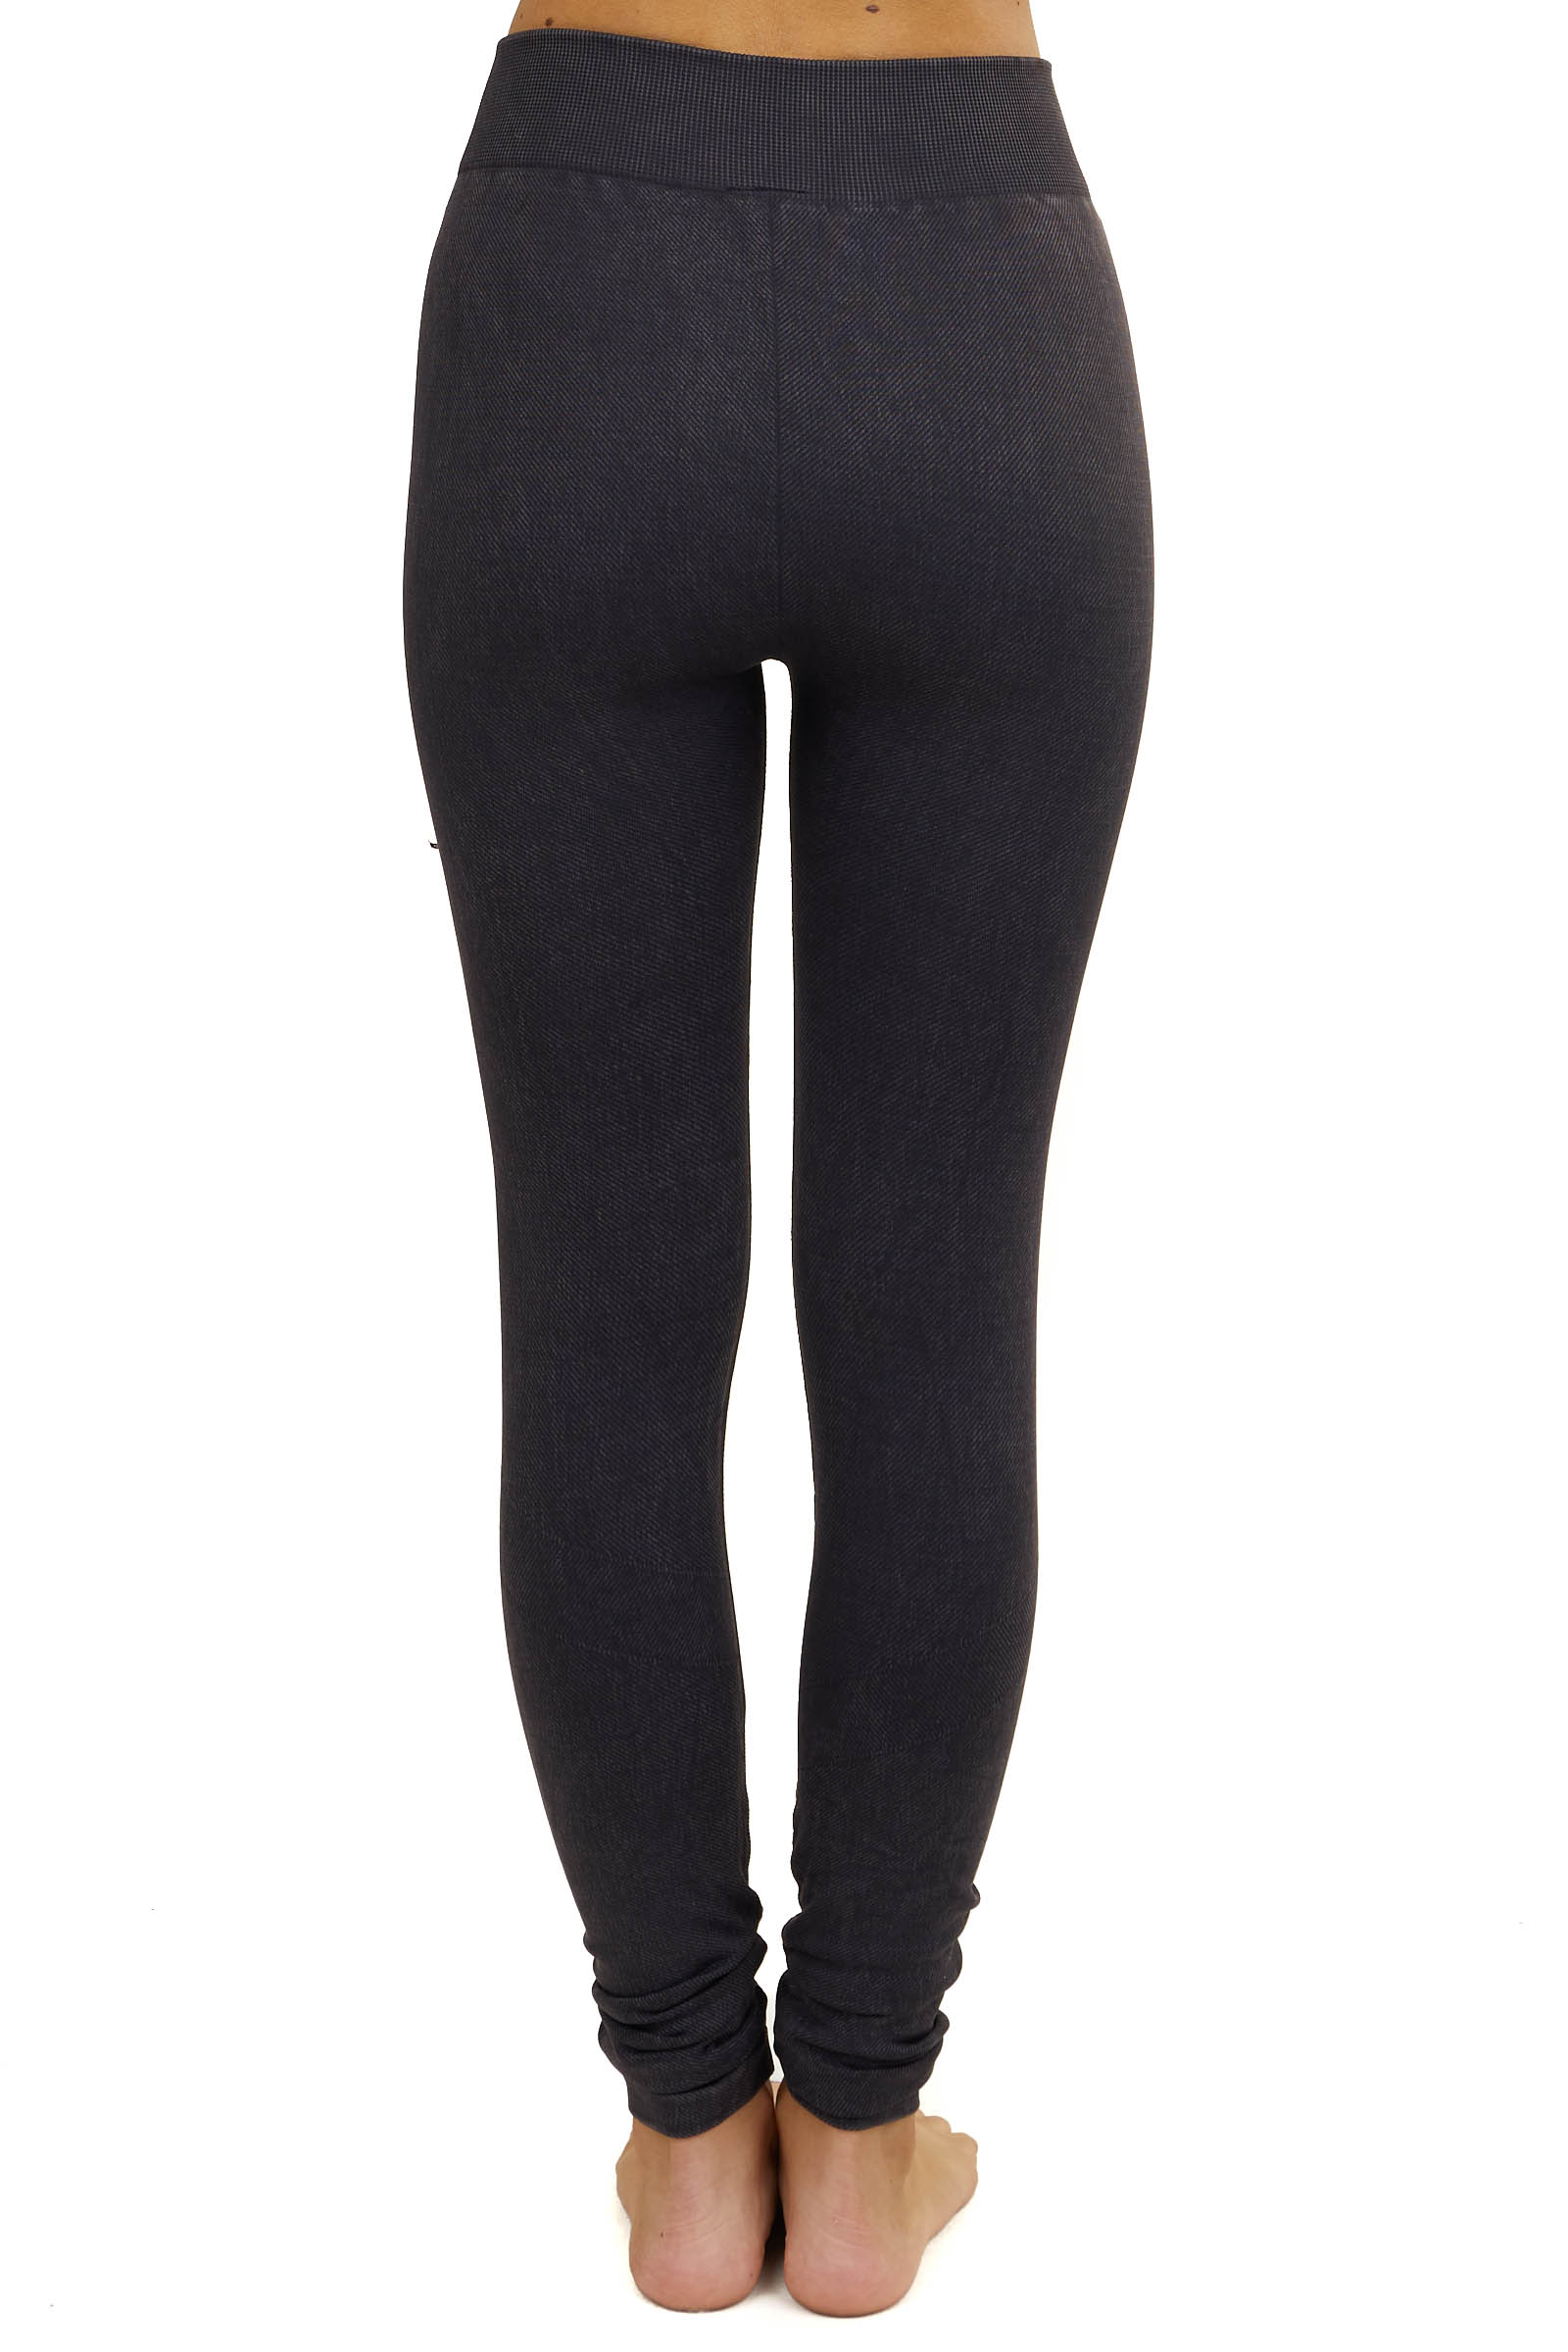 Faded Charcoal Moto Leggings with Distressed Details